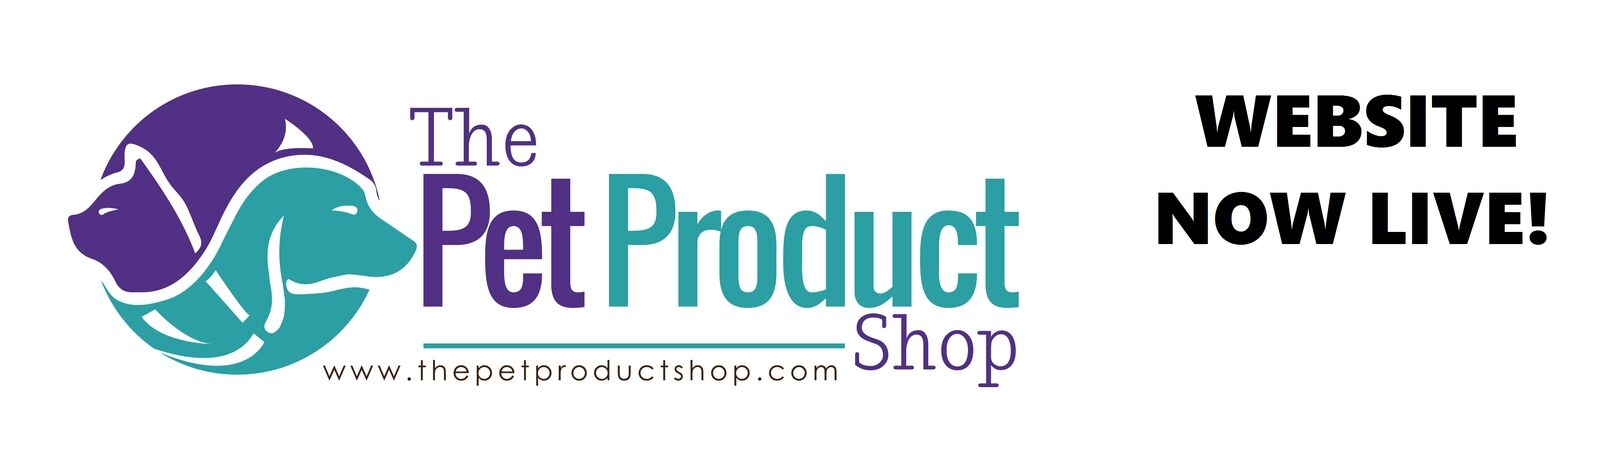 The Pet Product Shop